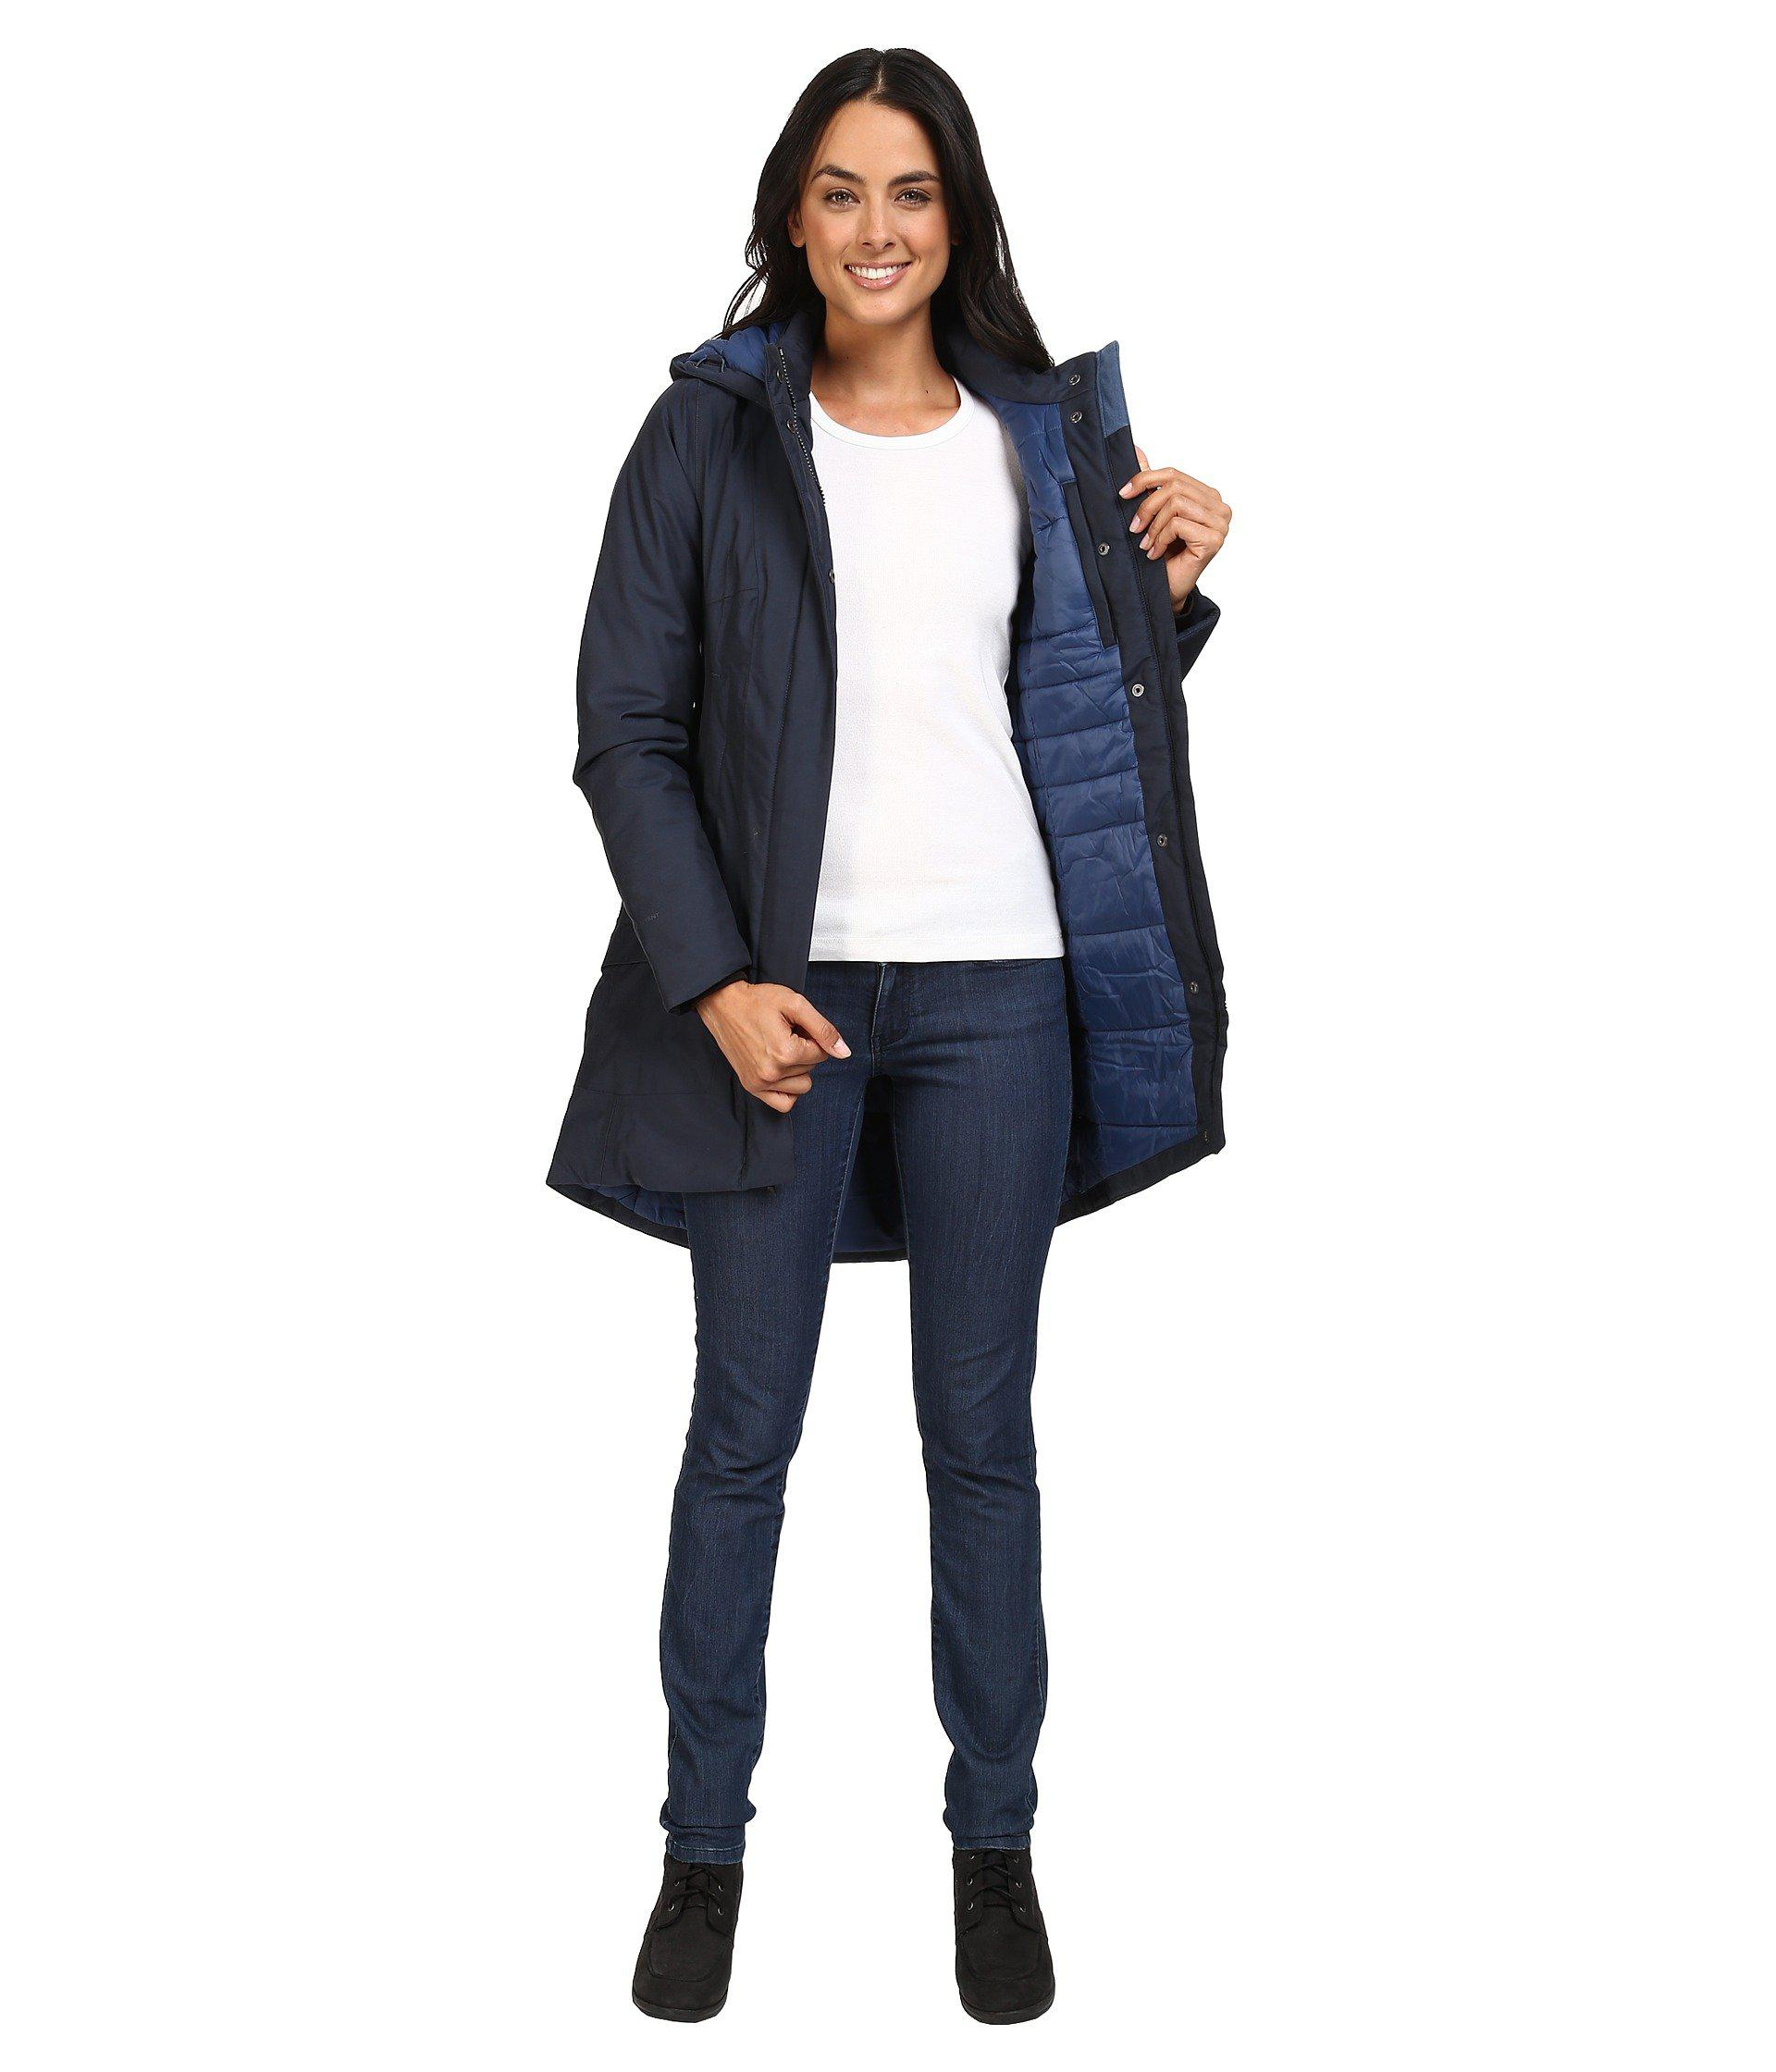 bf543346d Women's Blue Temescal Trench Coat